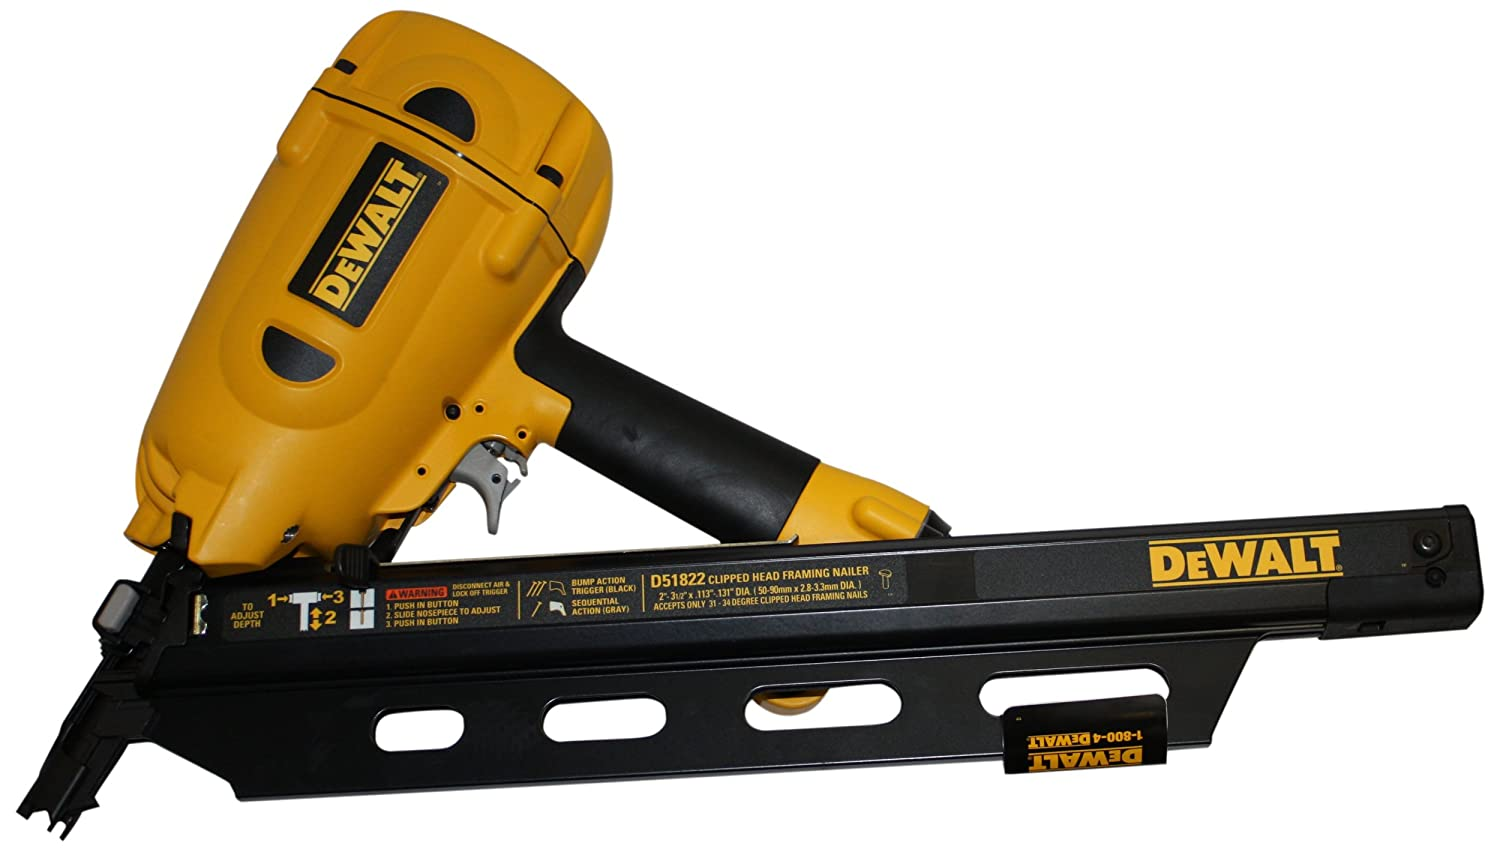 Dewalt D51822 Clipped Head 2-Inch To 3-1/2-Inch Framing Nailer ...